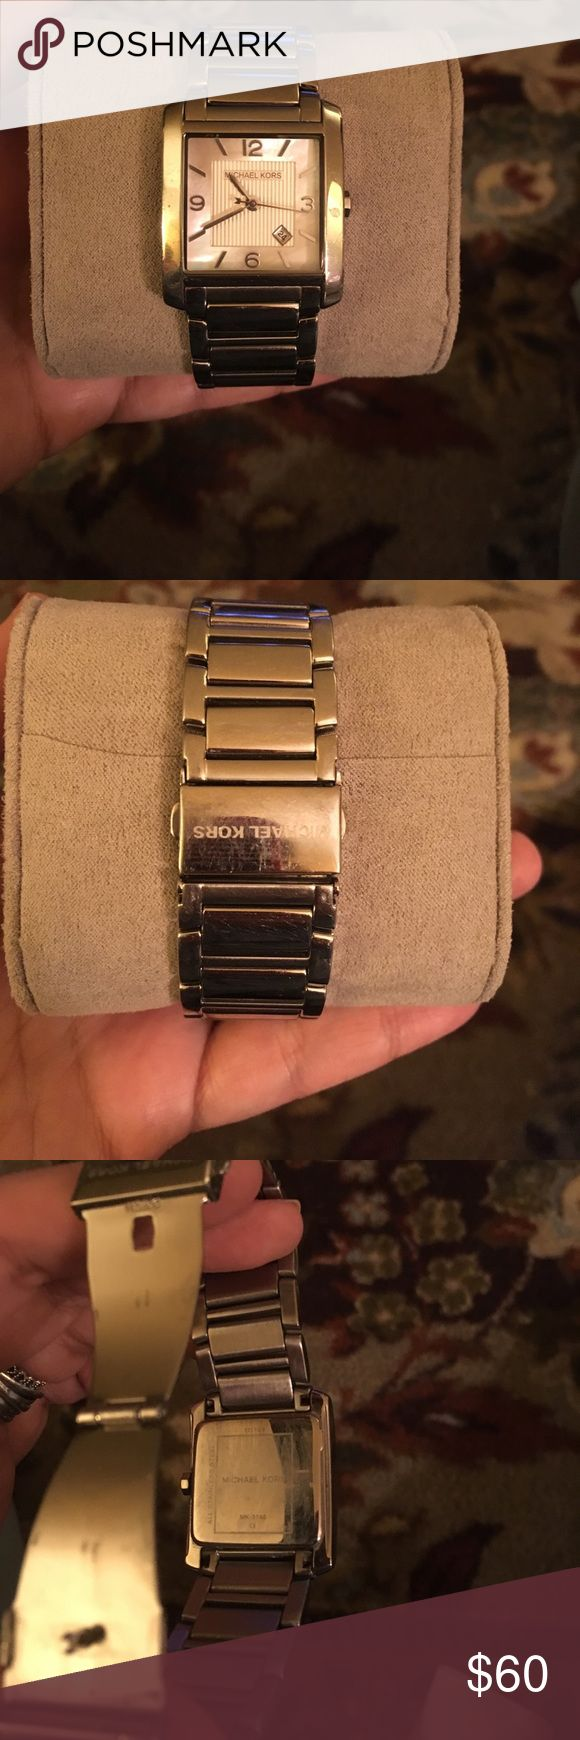 Michael Kors watch Michael Kors silver watch gently used no scratches on face but some normal wear on band needs battery box included Michael Kors Accessories Watches